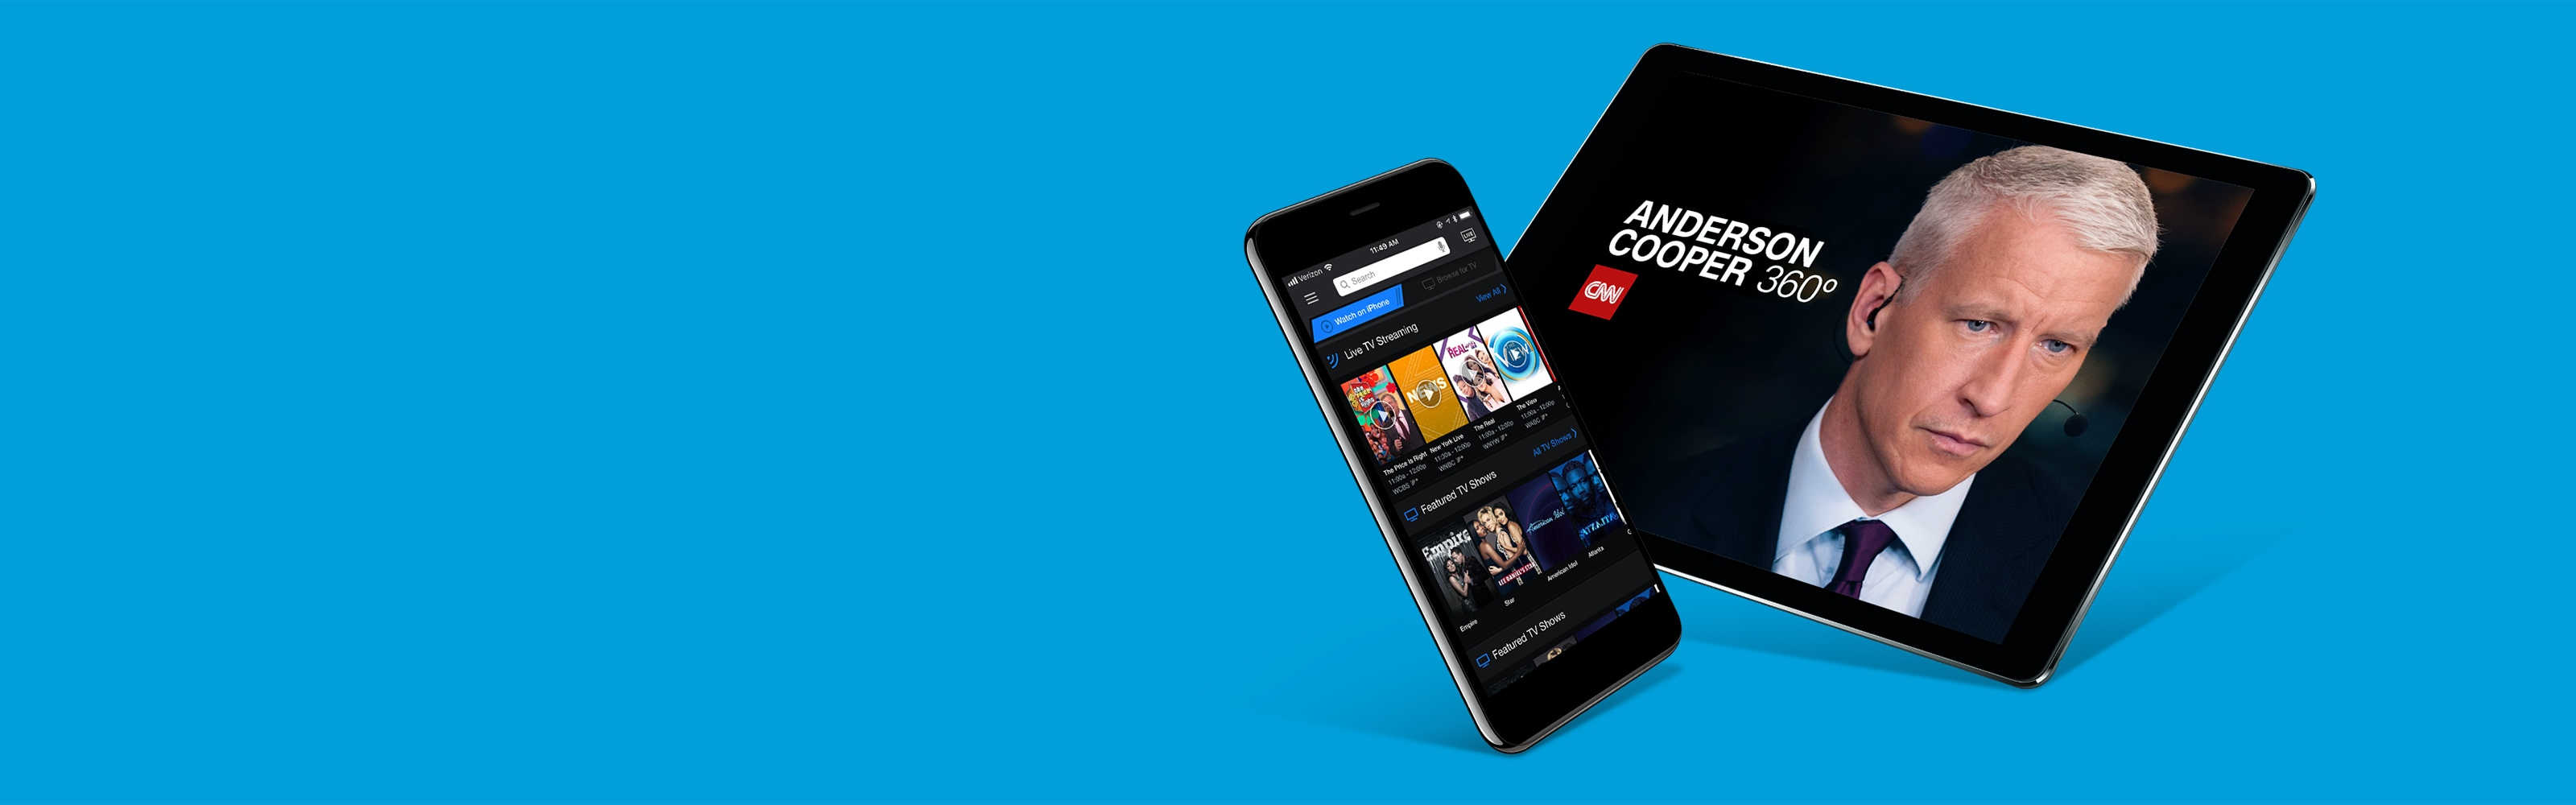 Directv App Stream Tv On Your Mobile Phone Or Tablet